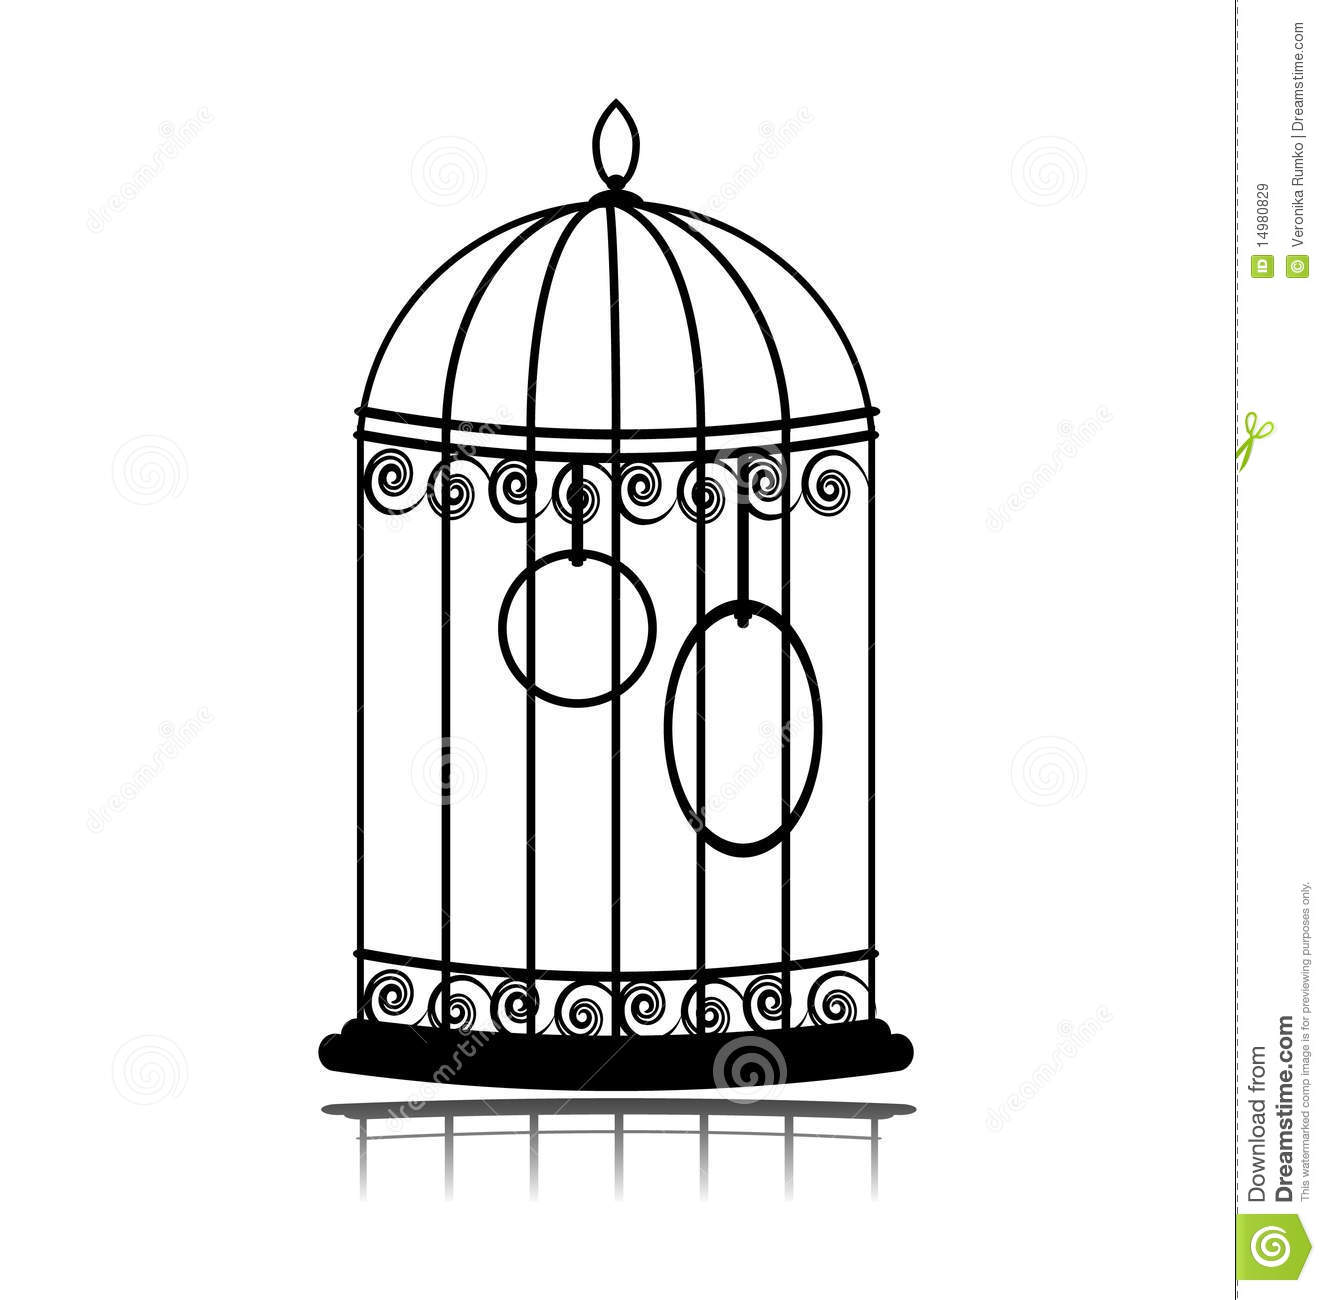 Vintage Birdcage Stock Vector Illustration Of Cage